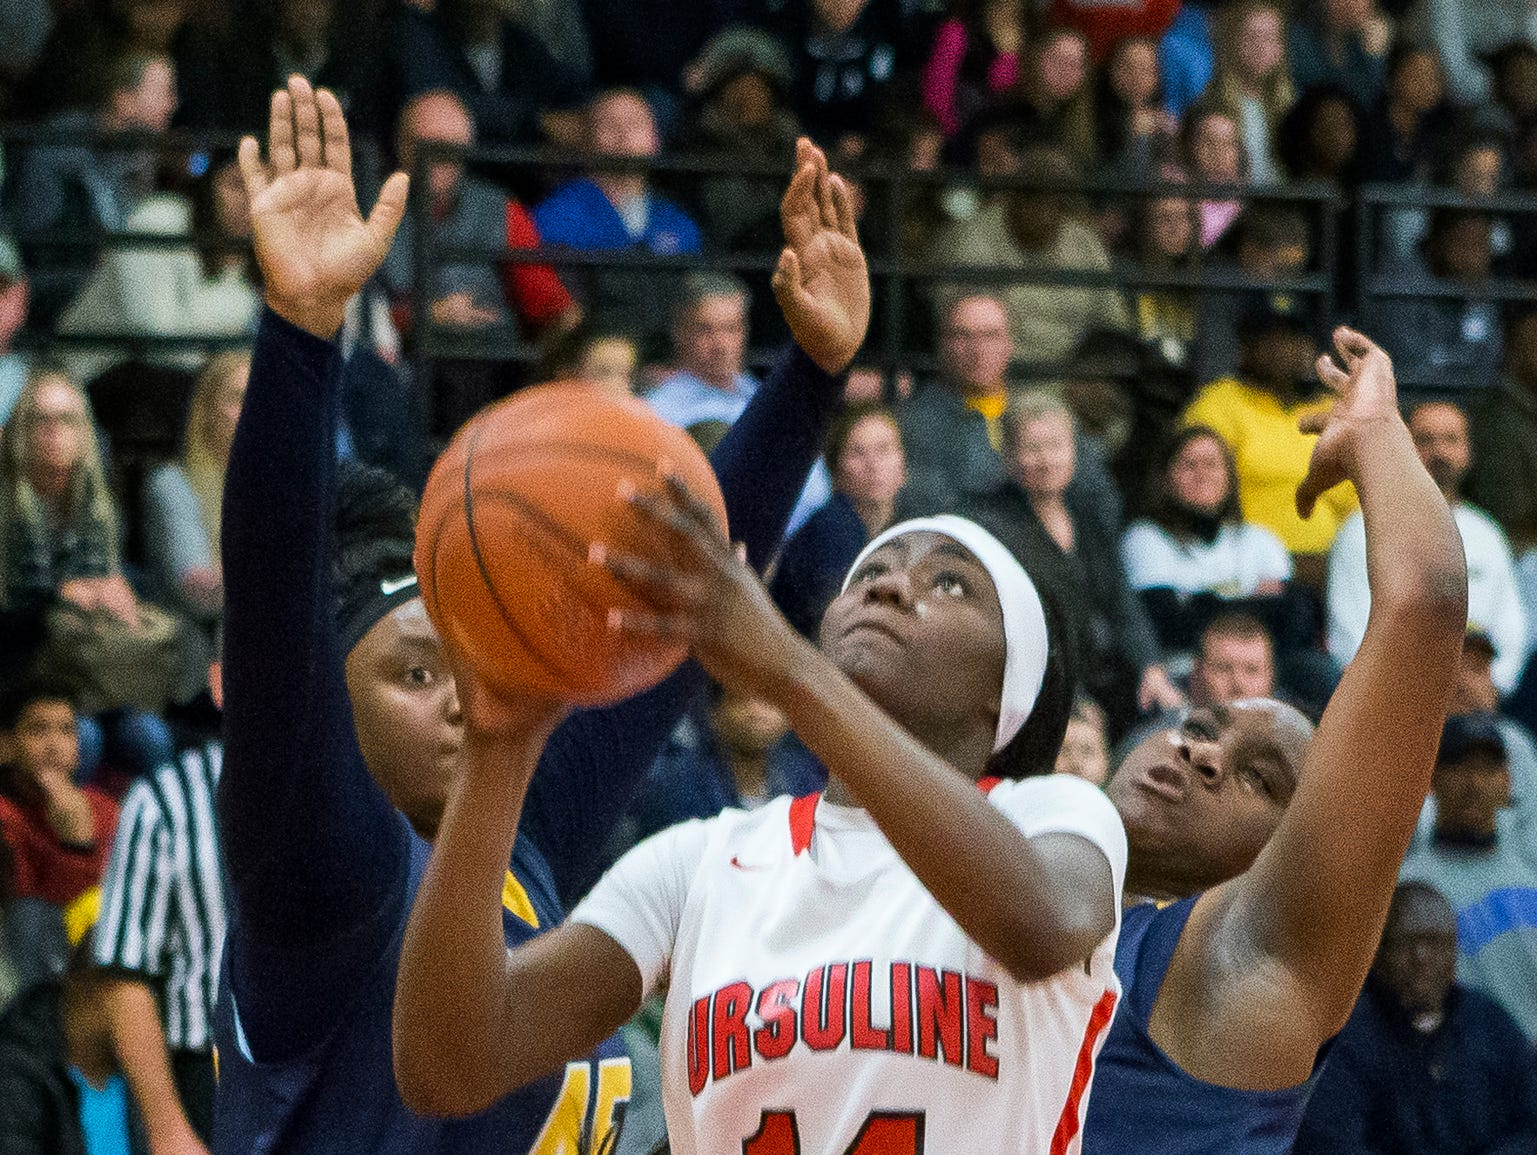 Ursuline's Kryshell Gordy (No. 14) puts up a shot in front of Sanford's Kendra Warren (No. 45) and Samantha Pollich in the second half of Ursuline's 50-40 win over Sanford at Ursuline Academy on Thursday night.